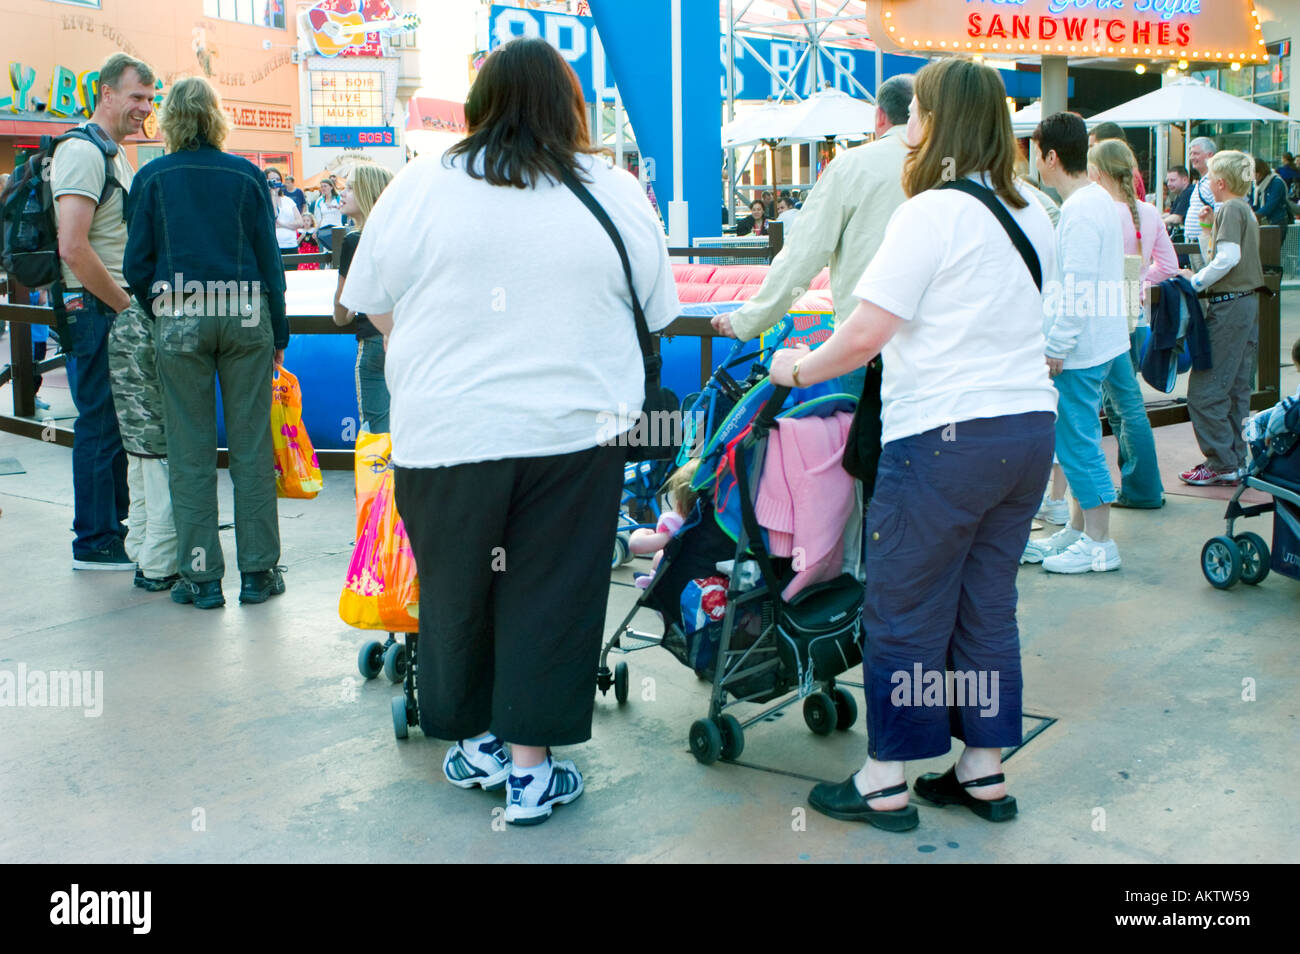 Paris FRANCE, Amusement Parks 'Disneyland Paris' Overweight Mothers in 'Disney Village' Walking away with Baby Carriages - Stock Image